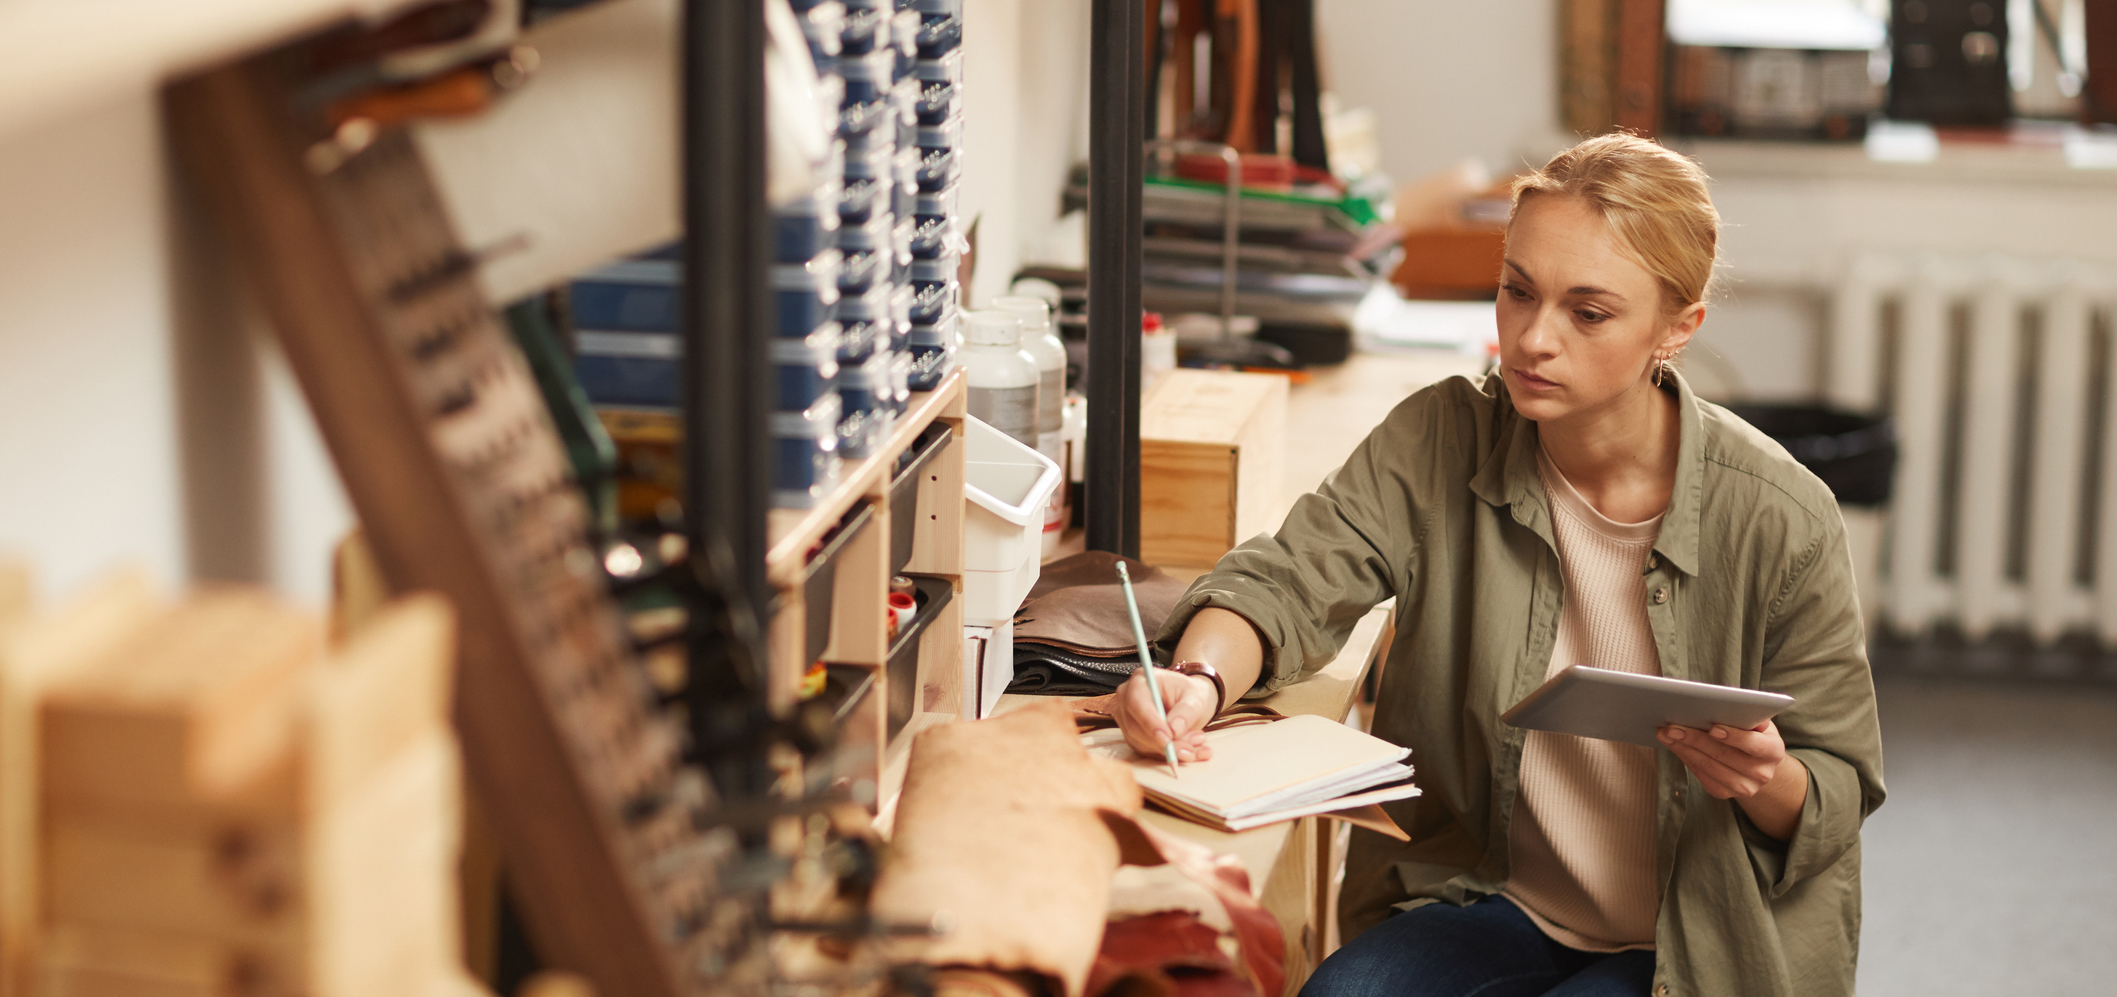 Horizontal high angle portrait of serious young woman sitting at table in craft workshop holding tablet PC and making notes in notebook